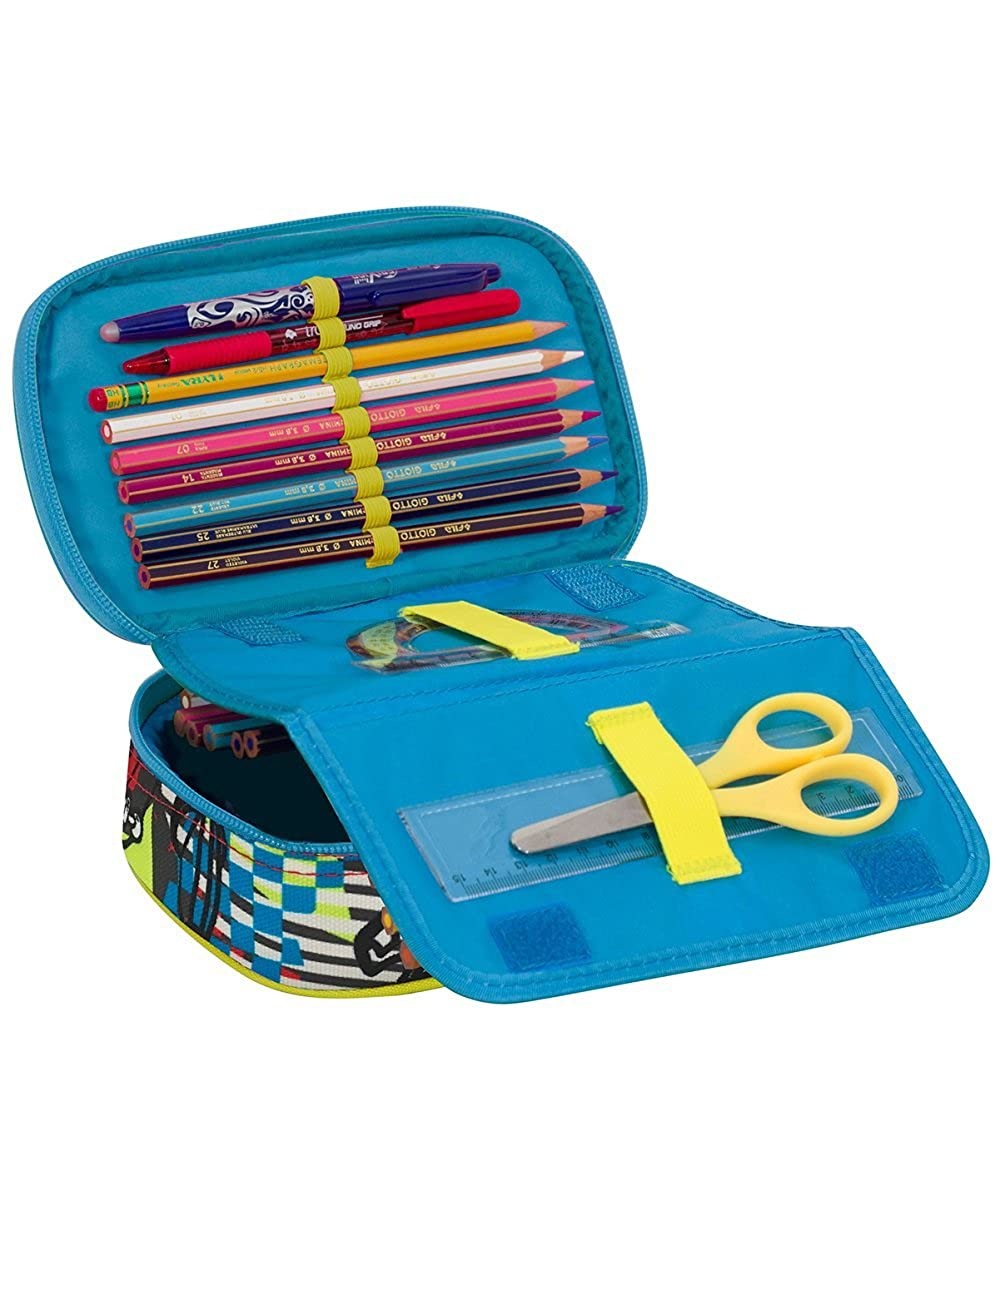 SJ BOY pencils. School Pencil Case SEVEN Fully Equippped with pens QUICK CASE Red